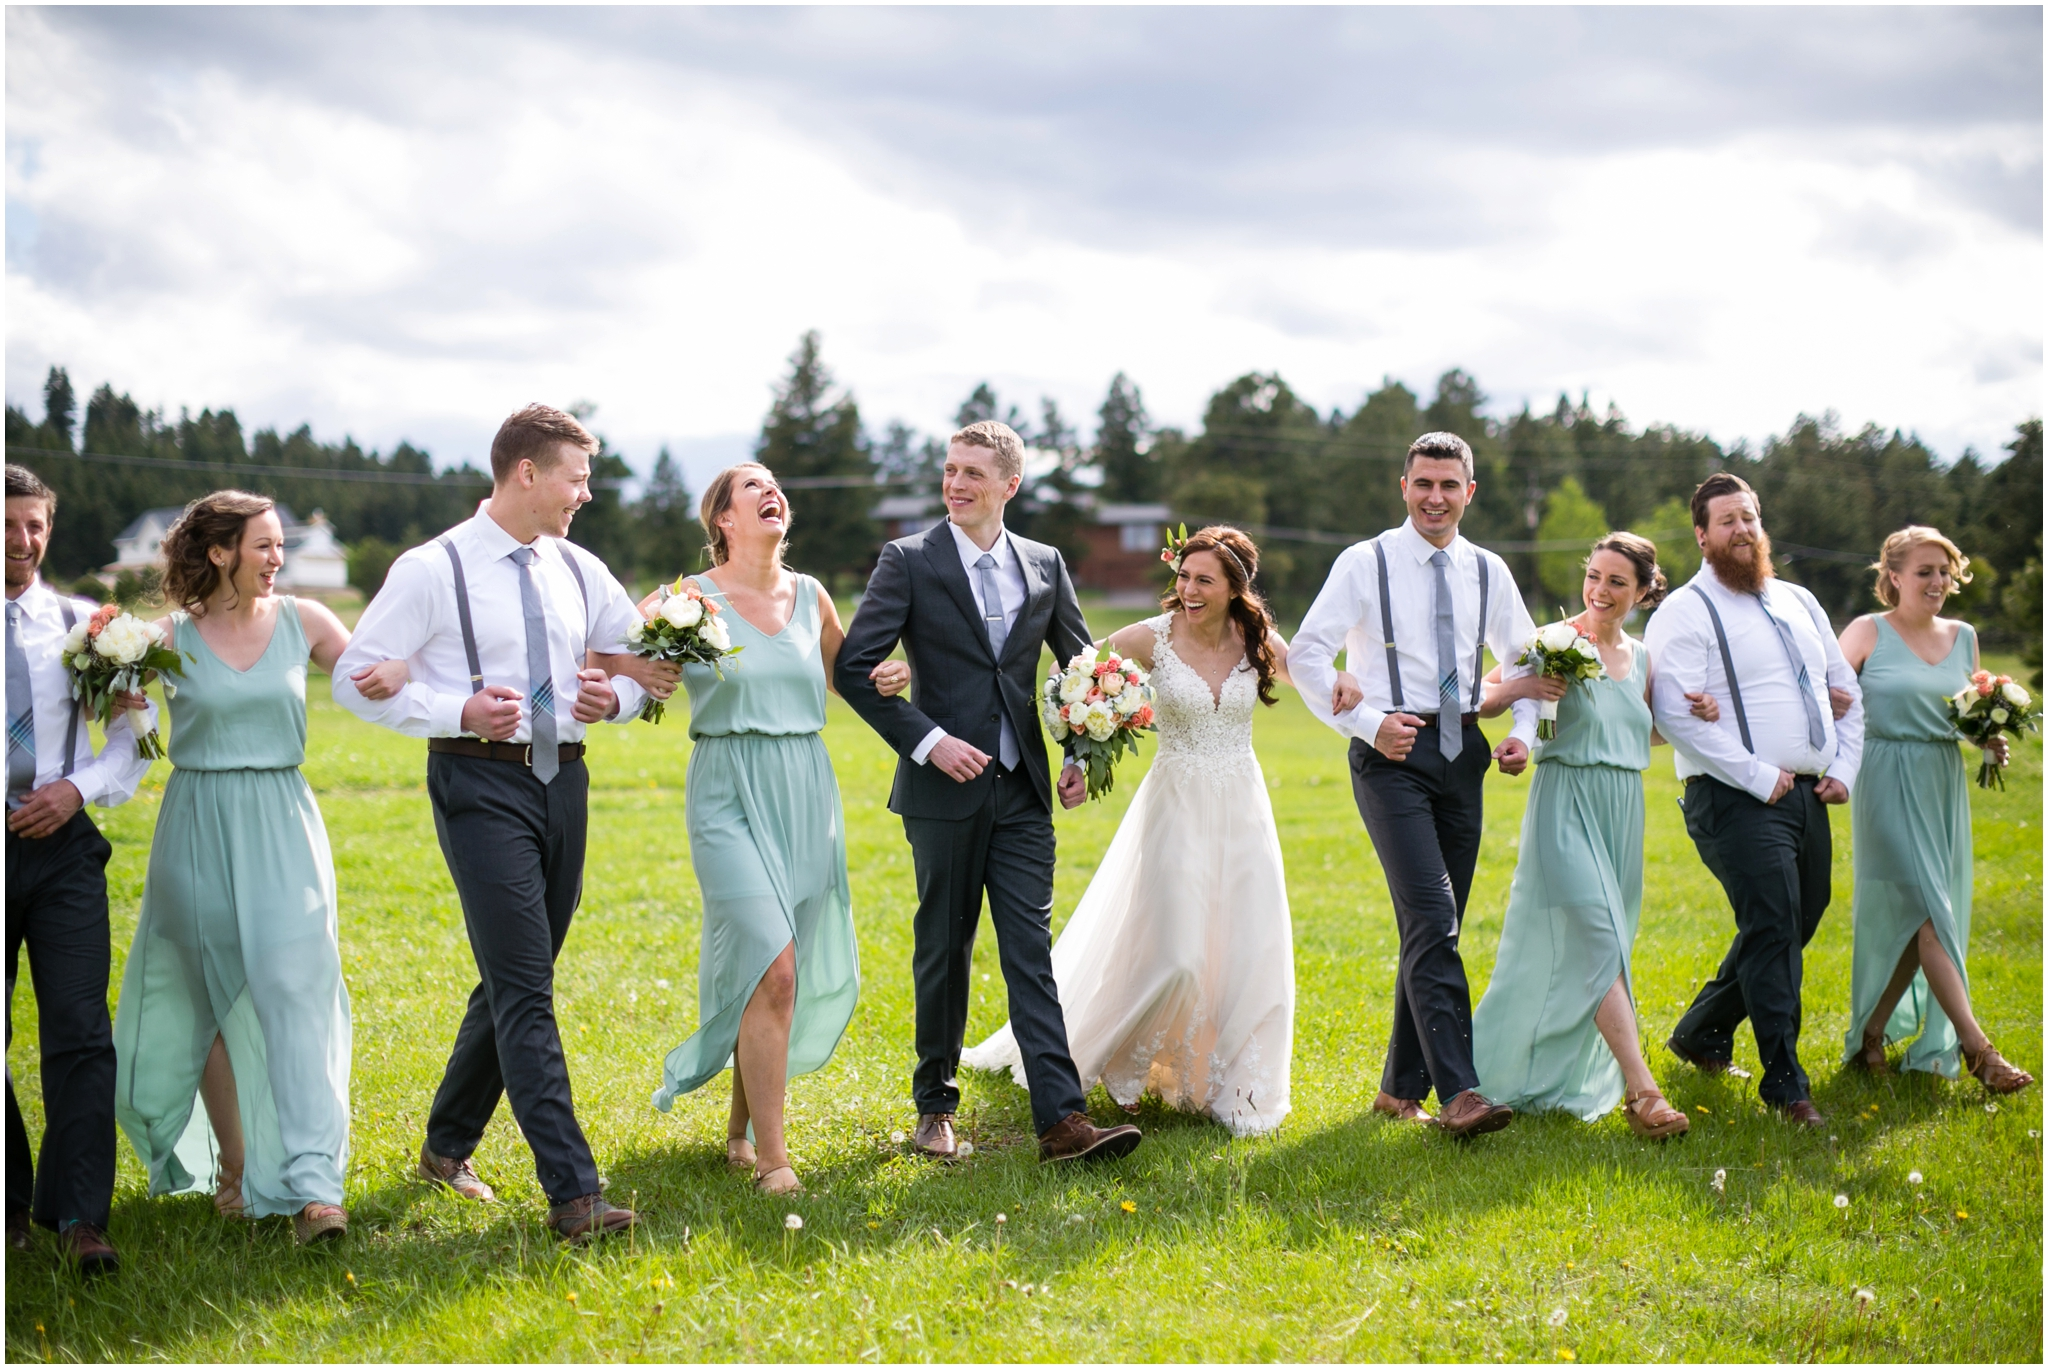 Evergreen_Lake_house_Photographers_Bridal_Party.JPG